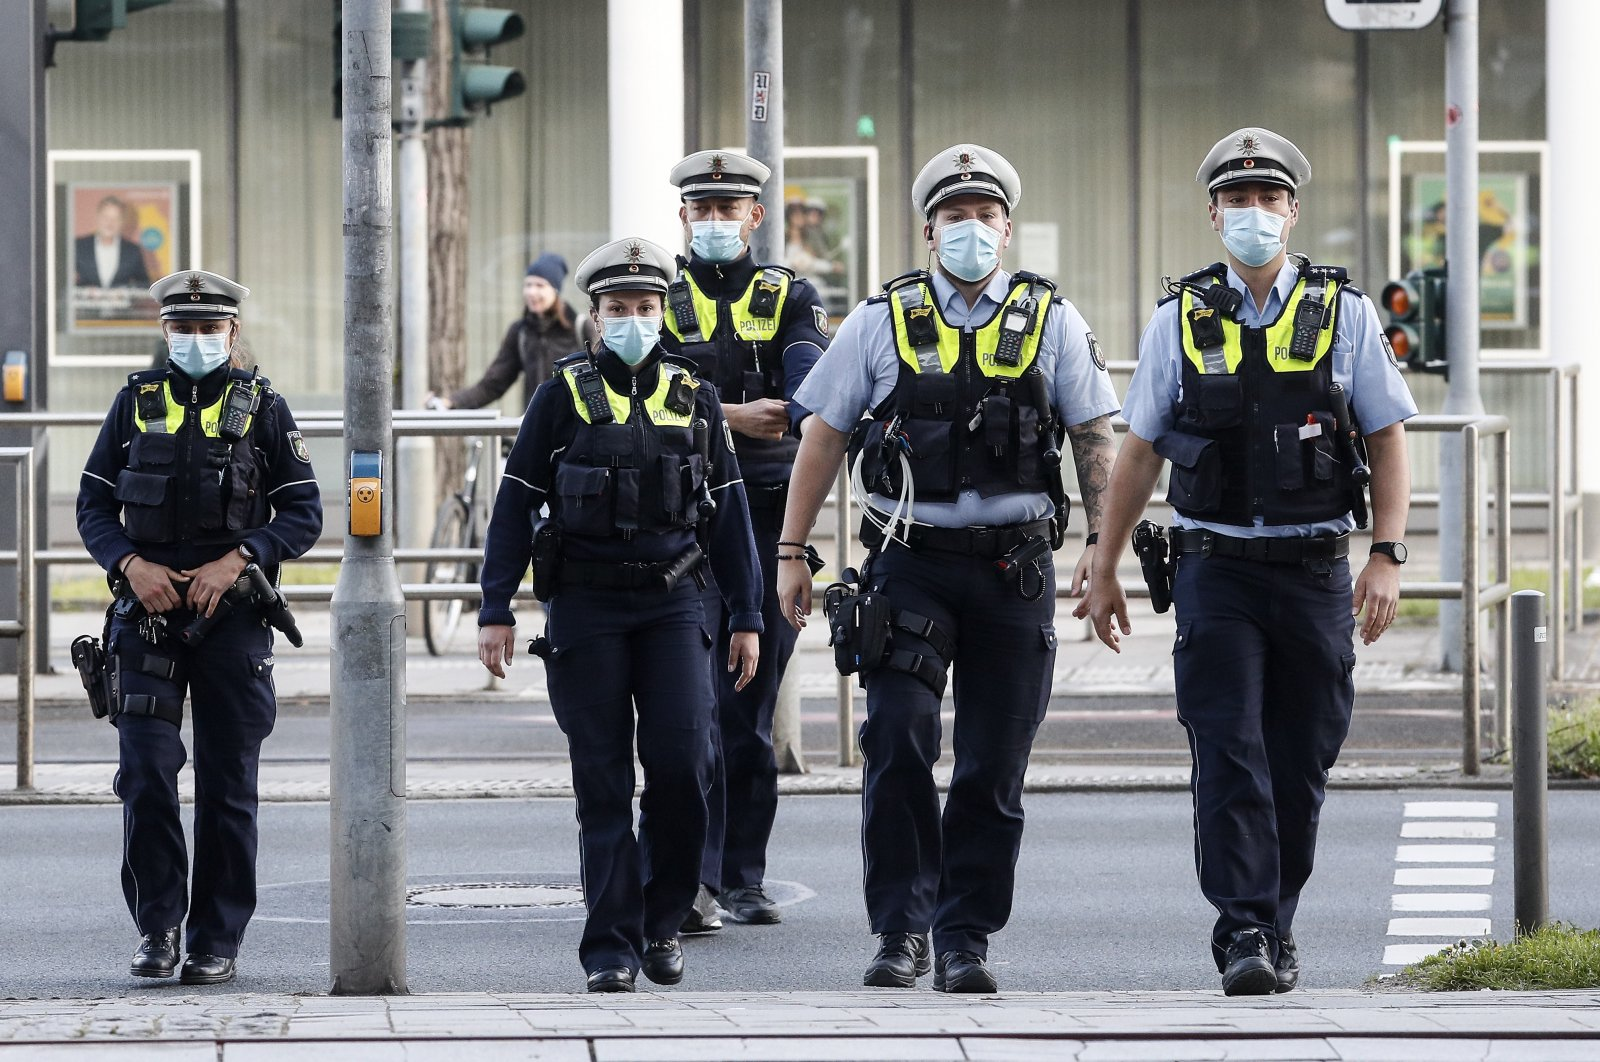 Police secure a court in Dusseldorf, Germany, April 29, 2021. (AP Photo)